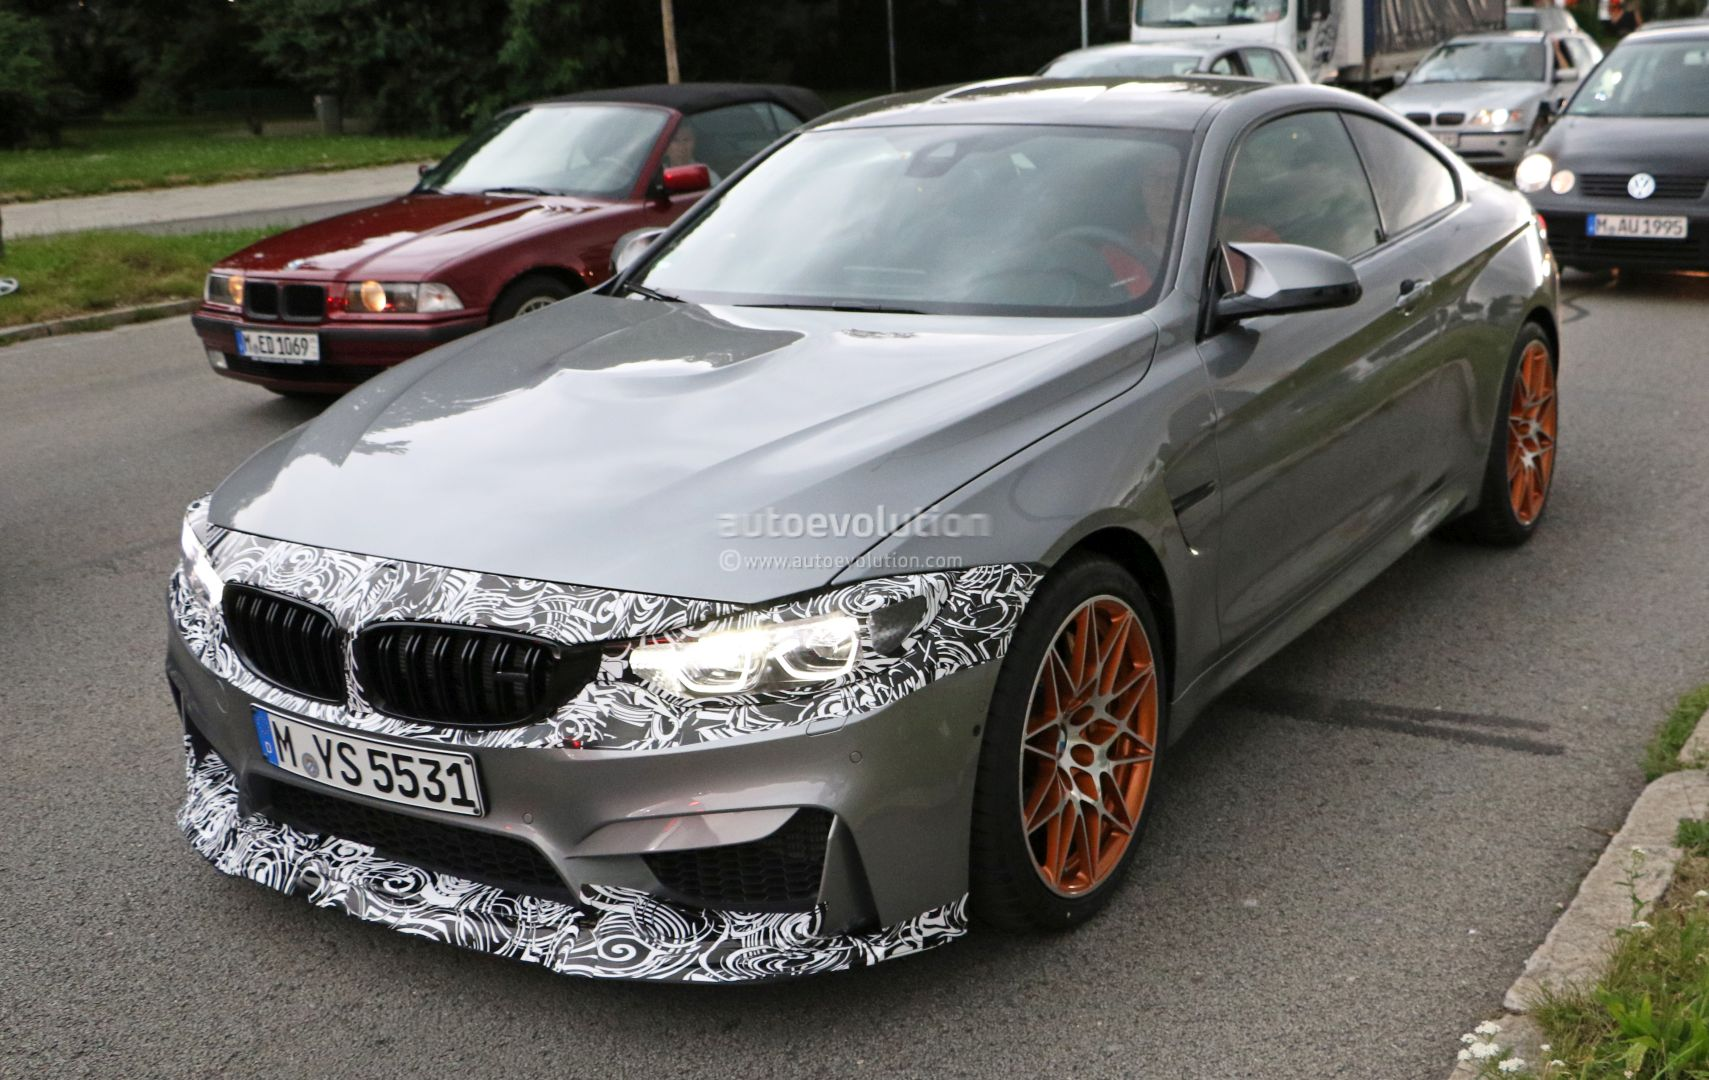 2018 Bmw M4 Facelift Lci Spied With M4 Gts Like